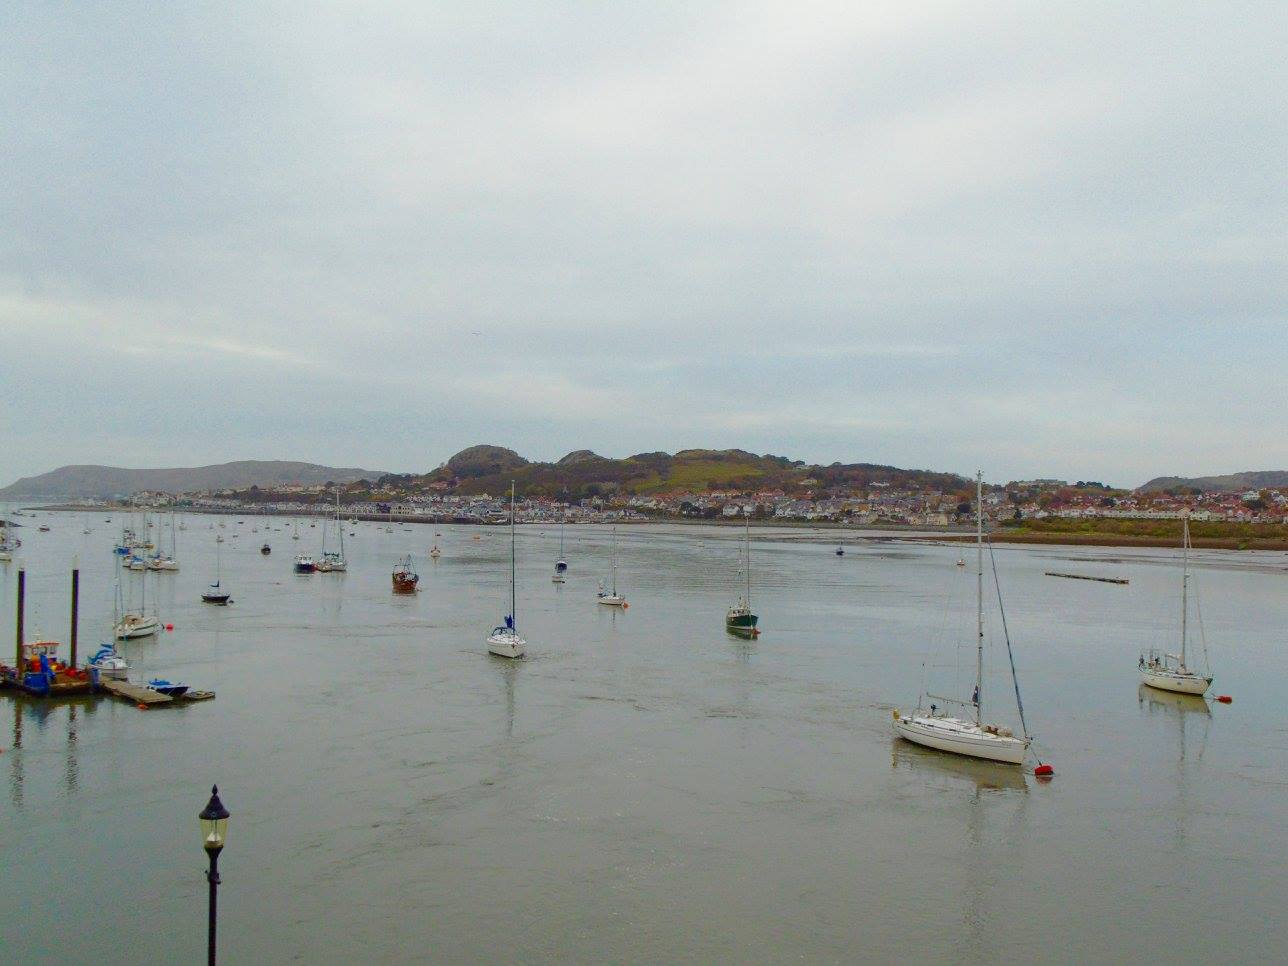 The waterfront in Conwy, Wales